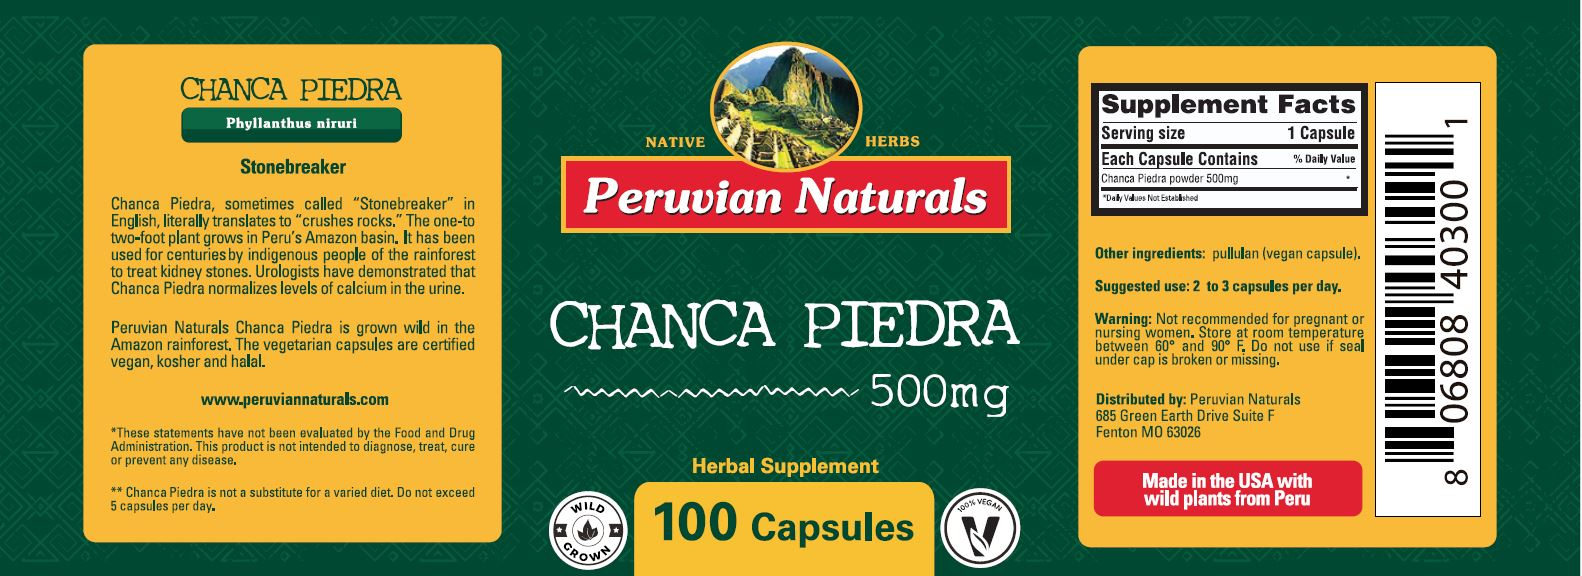 how to grow chanca piedra